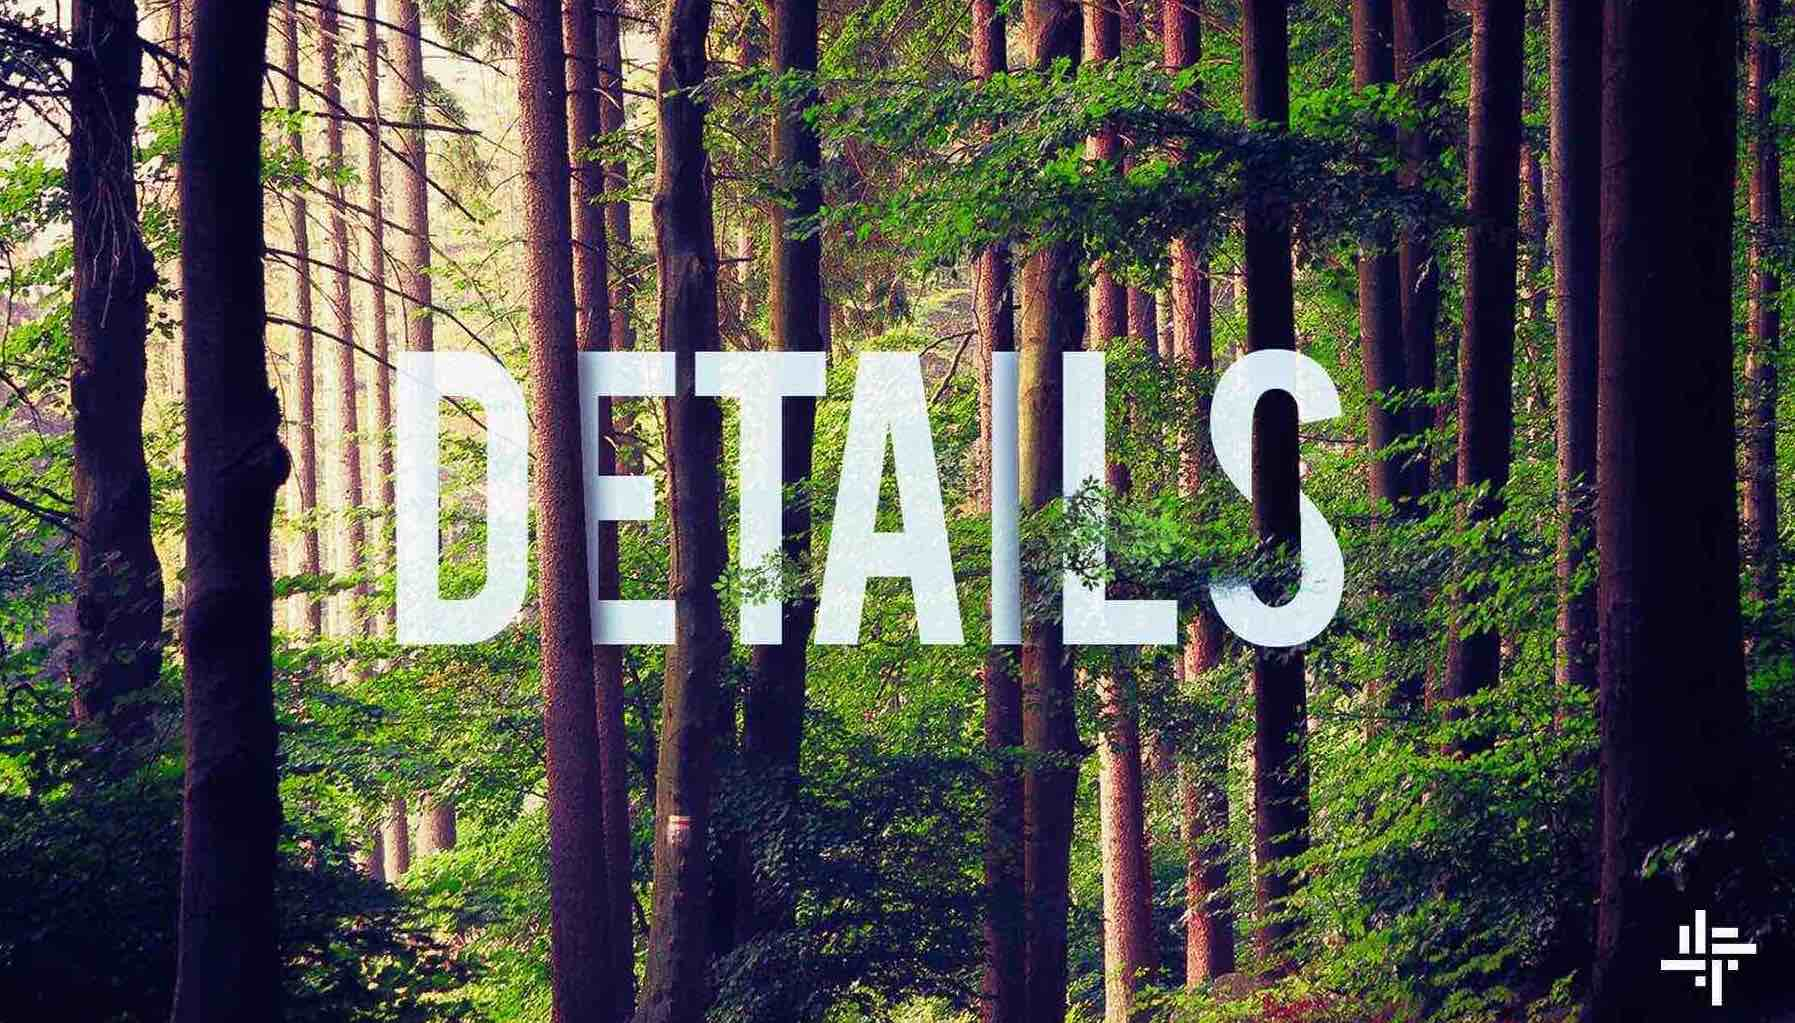 """A cover image showing trees in a forest, with the word """"details' visible through the trees."""